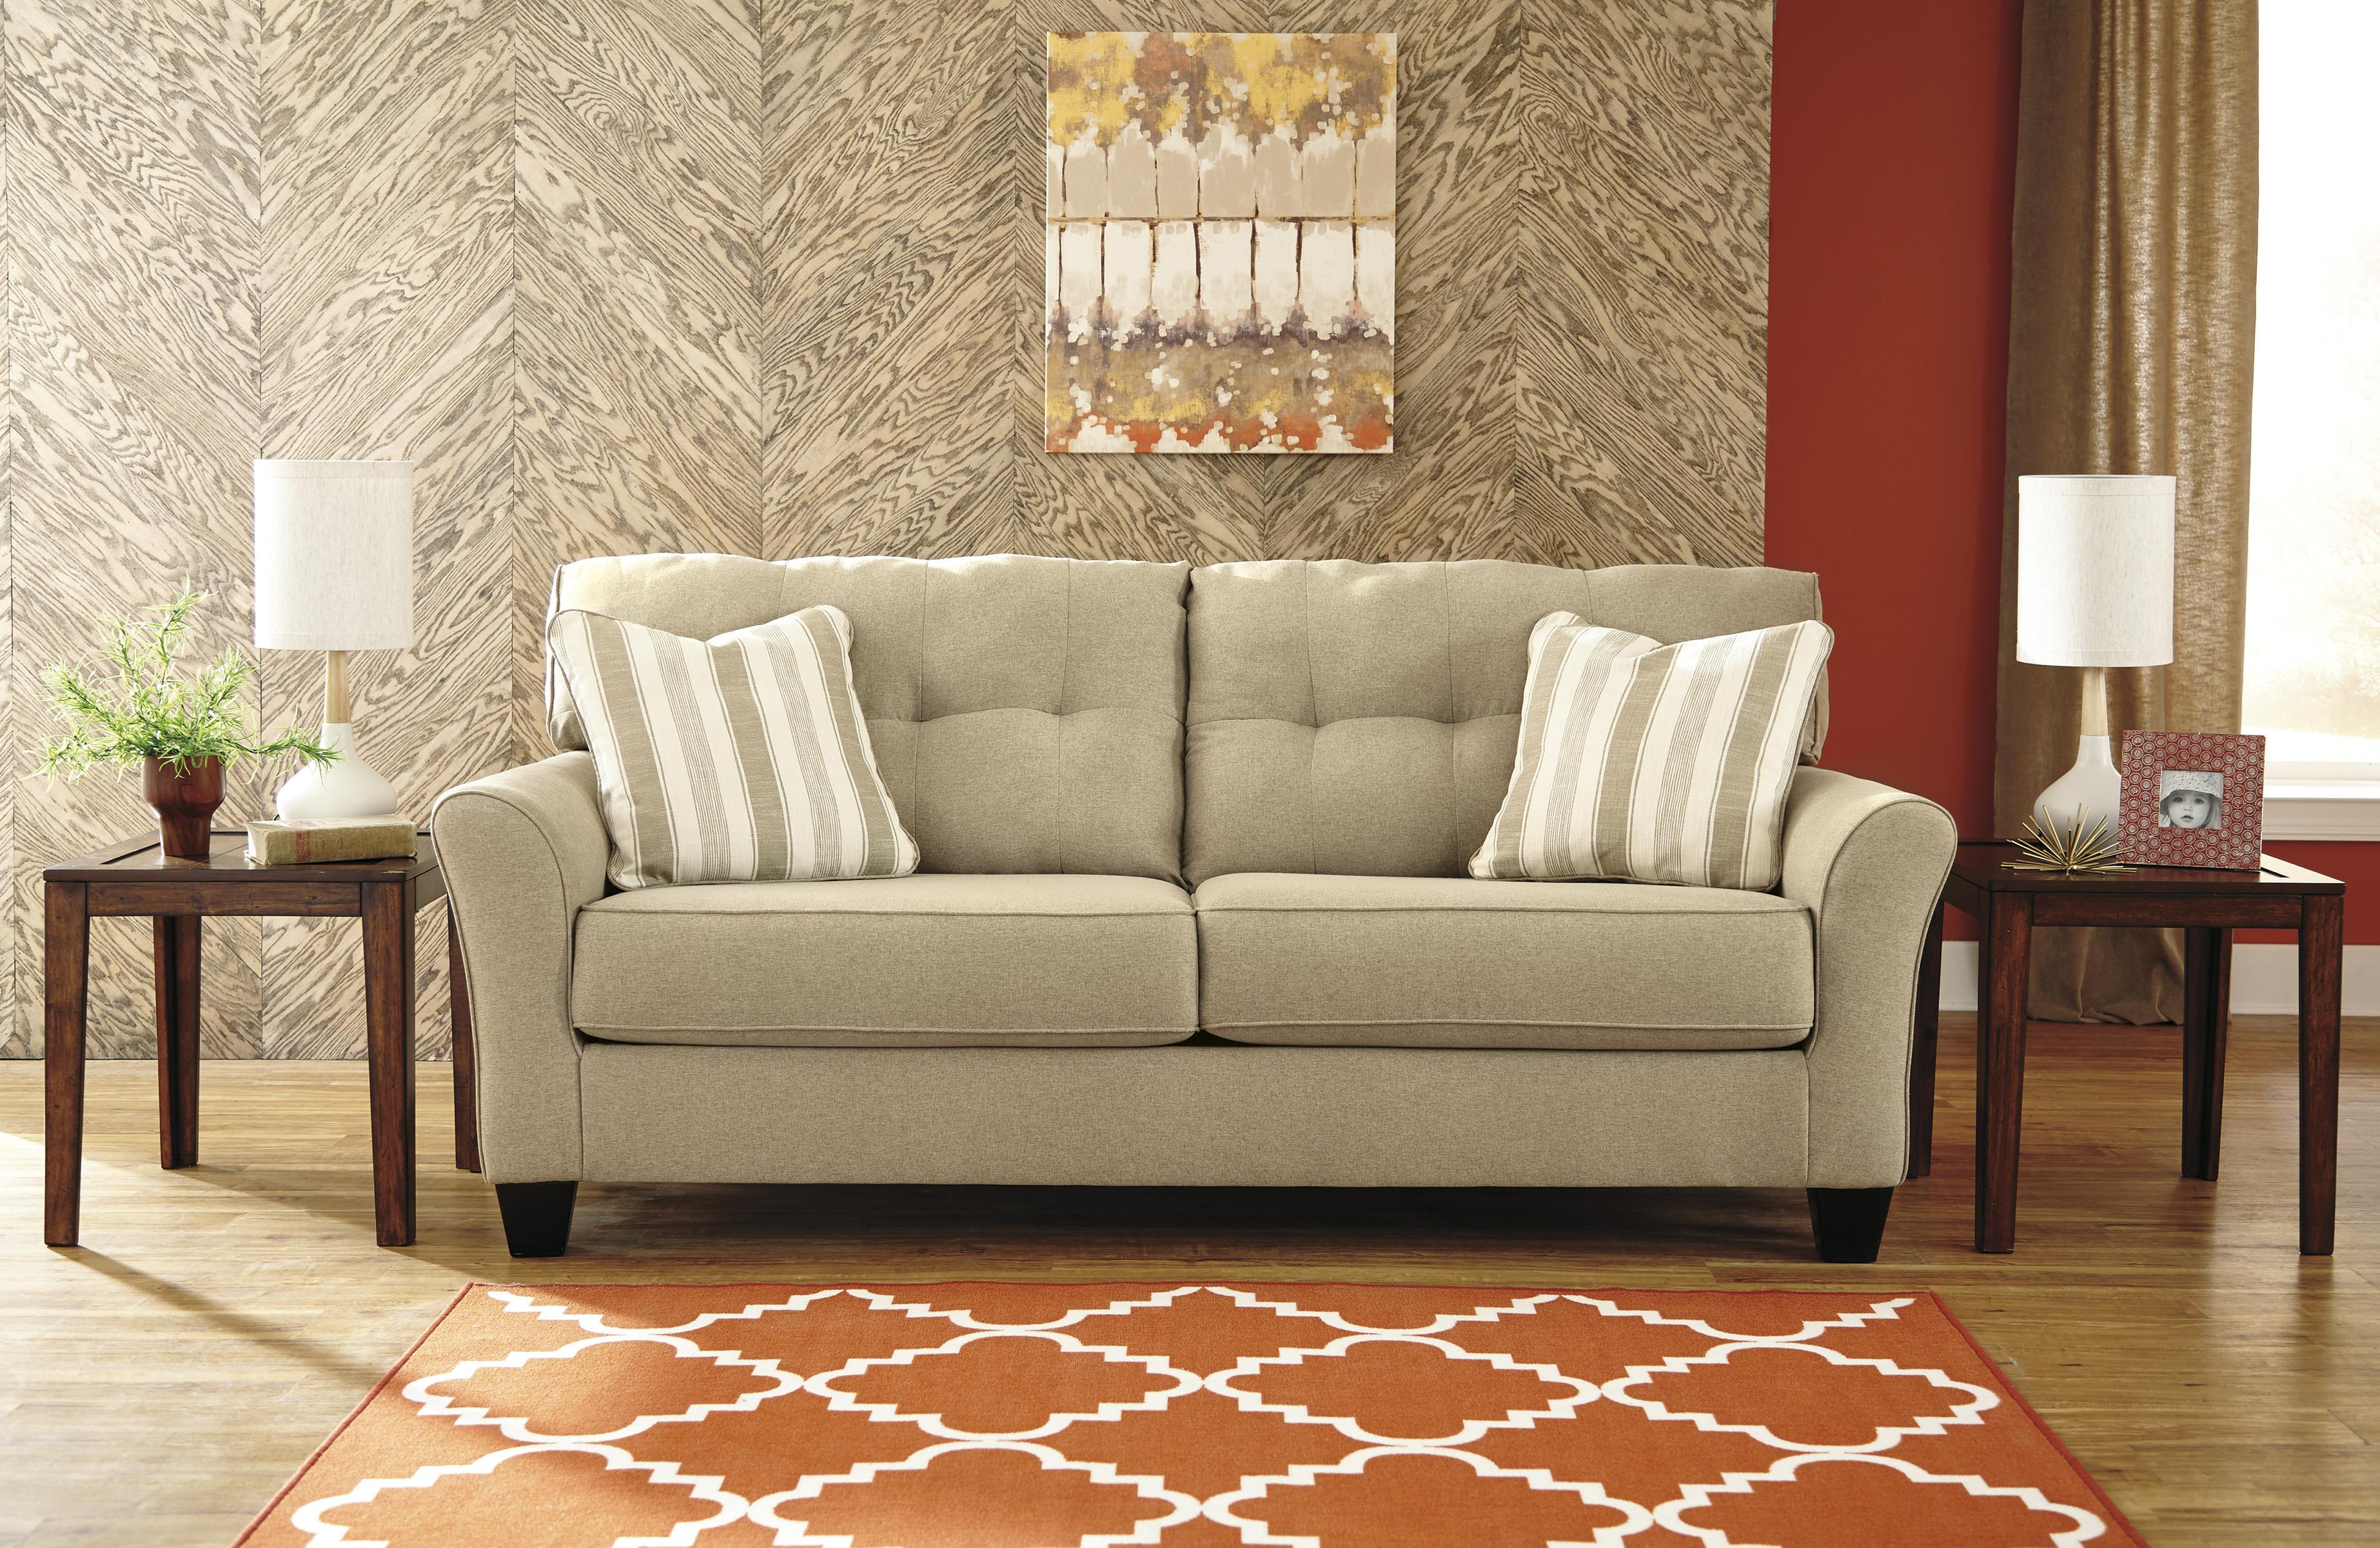 Contemporary Queen Sofa Sleeper in Khaki Fabric by Benchcraft